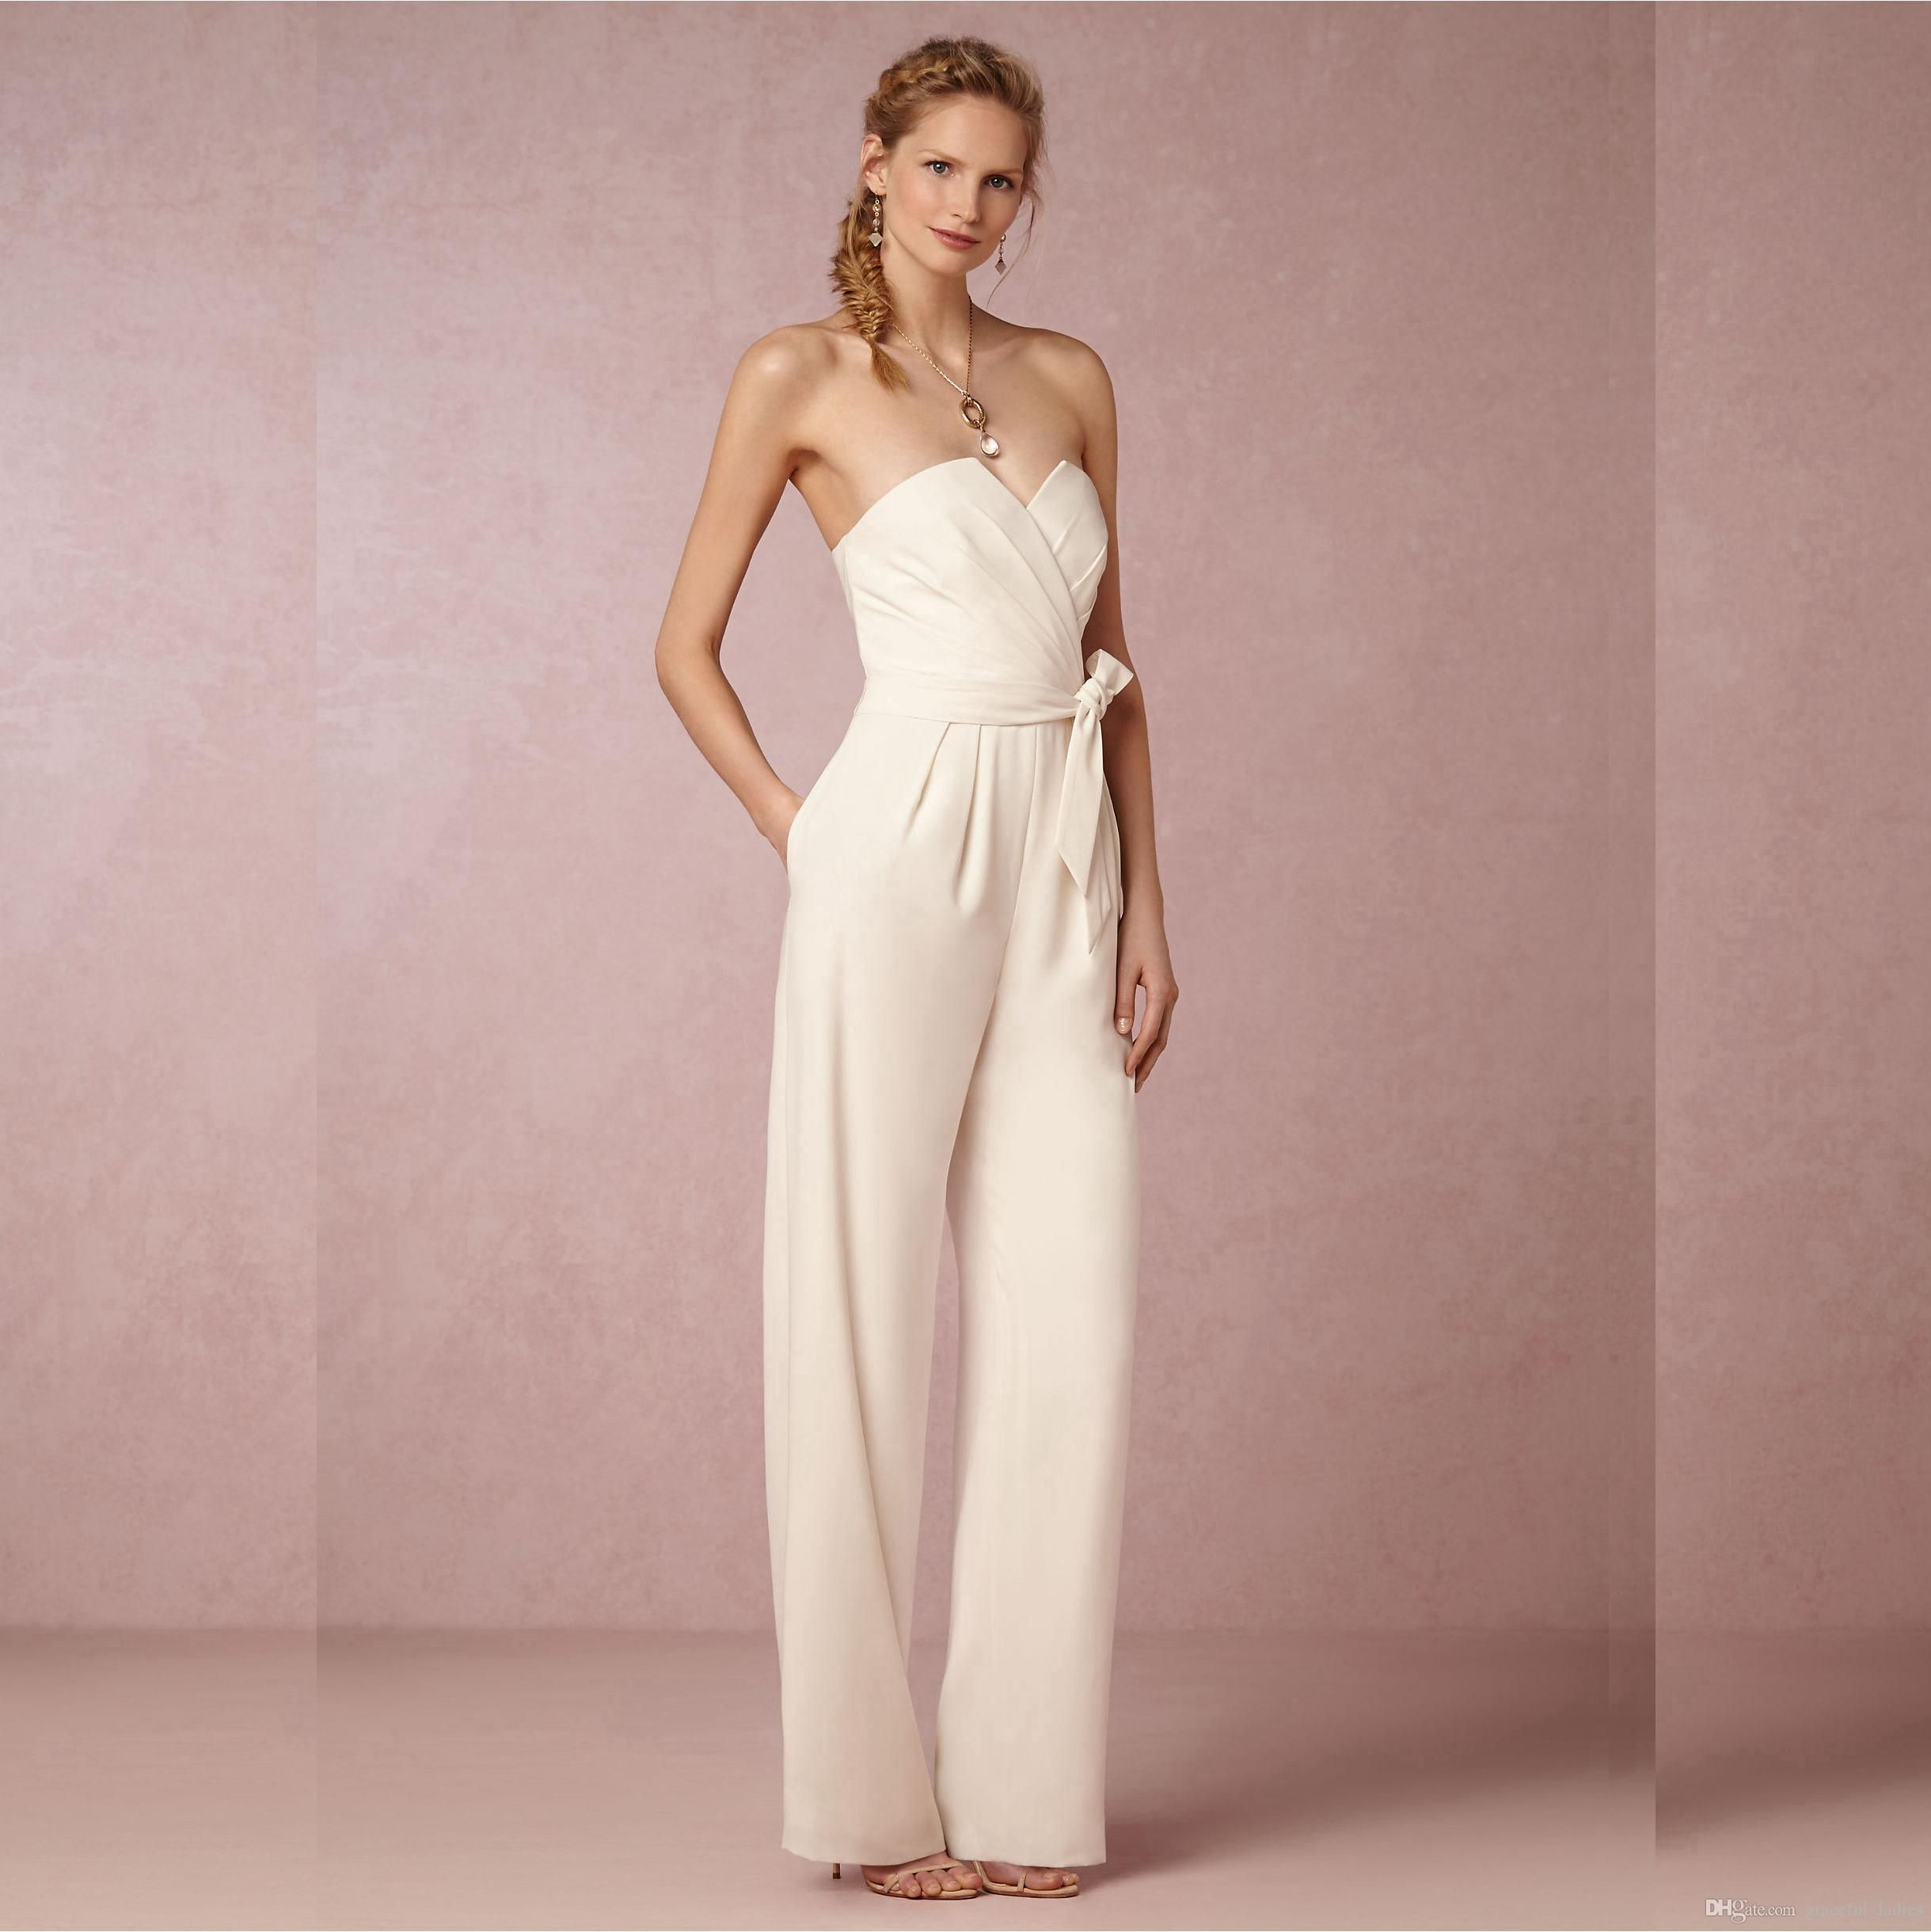 372837c25d6 ... Wide Leg Pants  by Jill Stuart for BHLDN . Bridal Pants